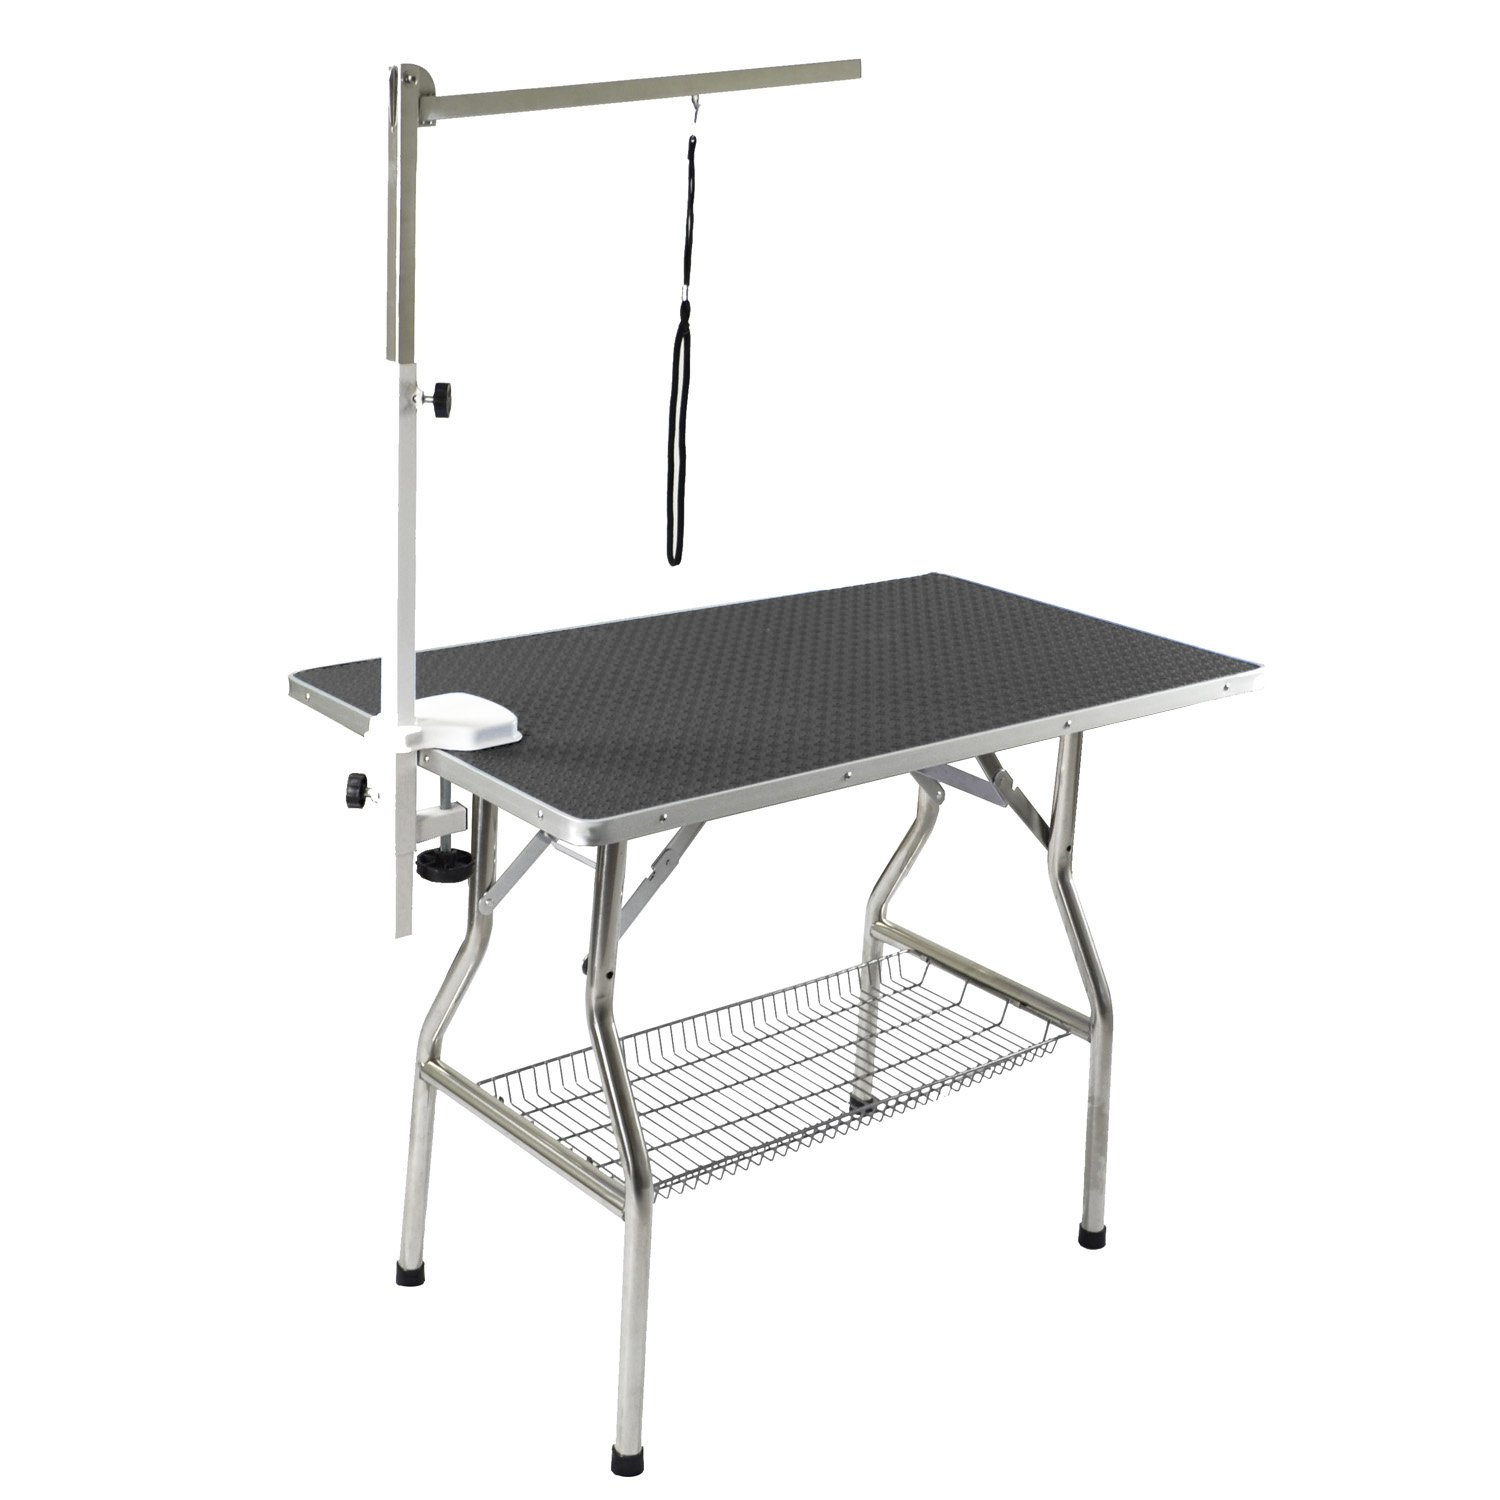 "Flying Pig Large Size Super Durable Heavy Duty Dog Pet Foldable Grooming Table (44"" x 24"")"